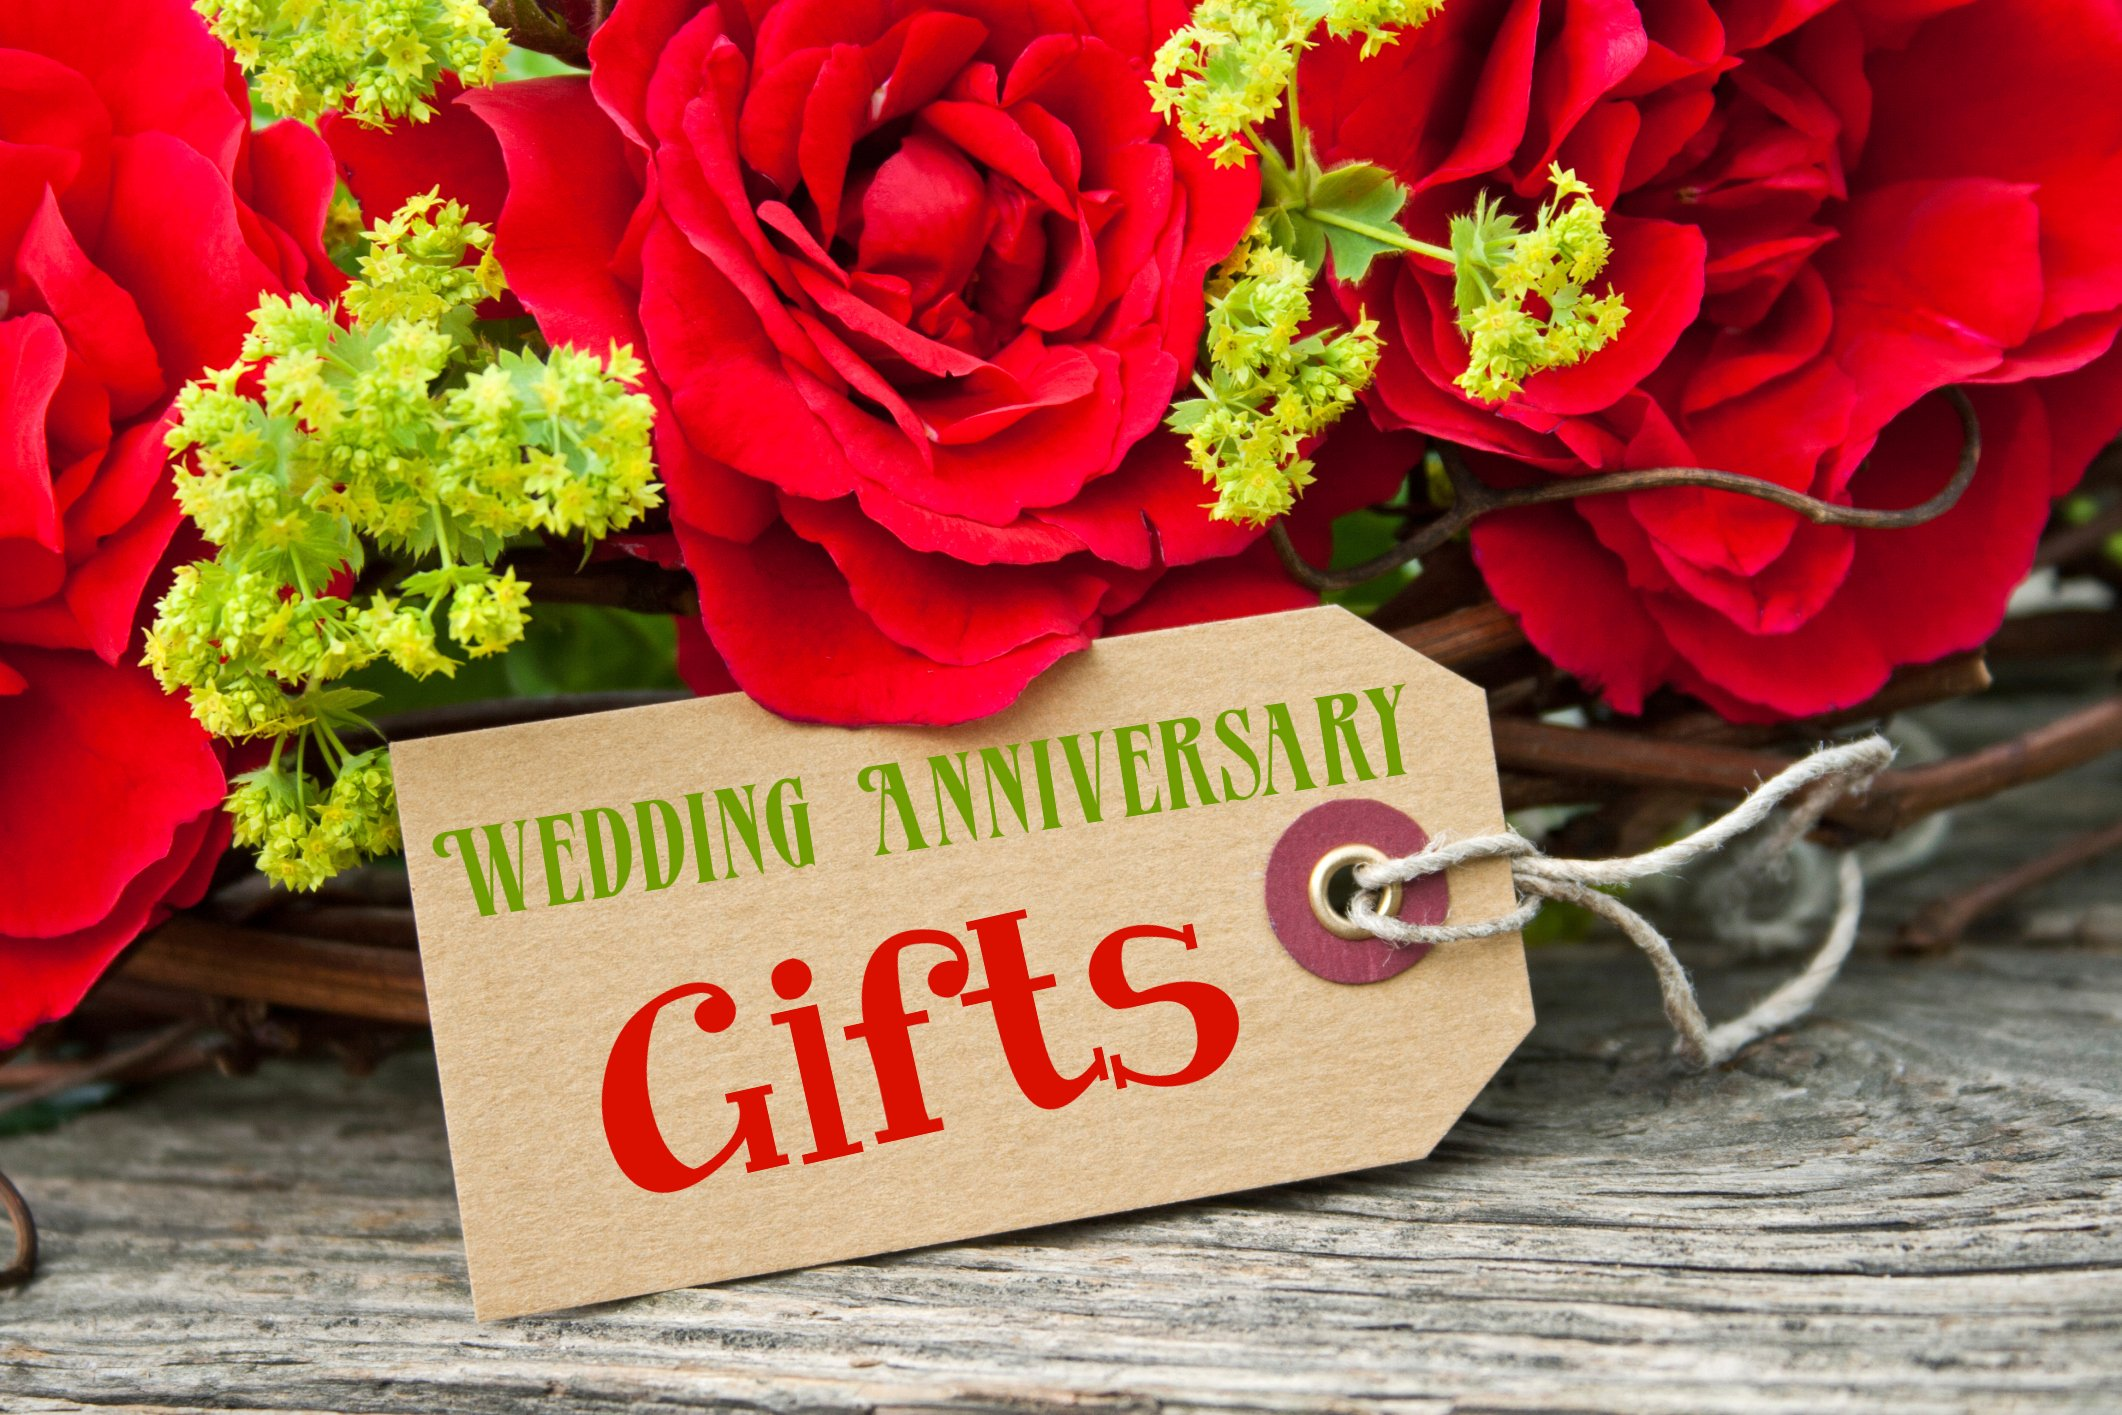 Wedding Gift List Insurance : Wedding Anniversary Gifts finder.com.au